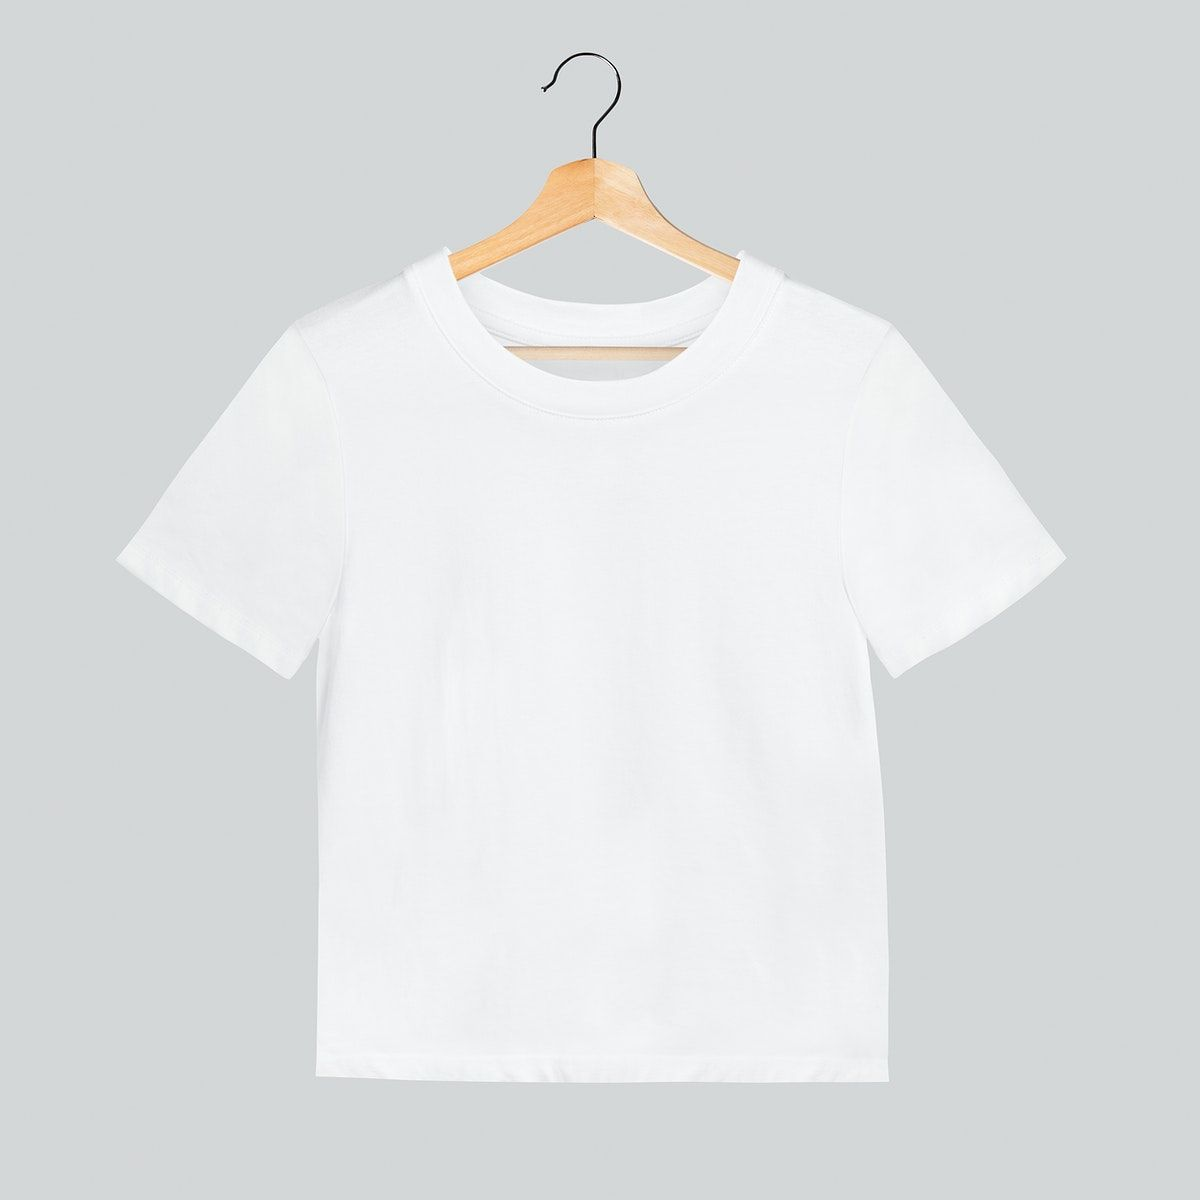 Download Download Premium Illustration Of Simple White T Shirt Mockup On A Wooden Clothing Mockup Shirt Mockup Tshirt Mockup